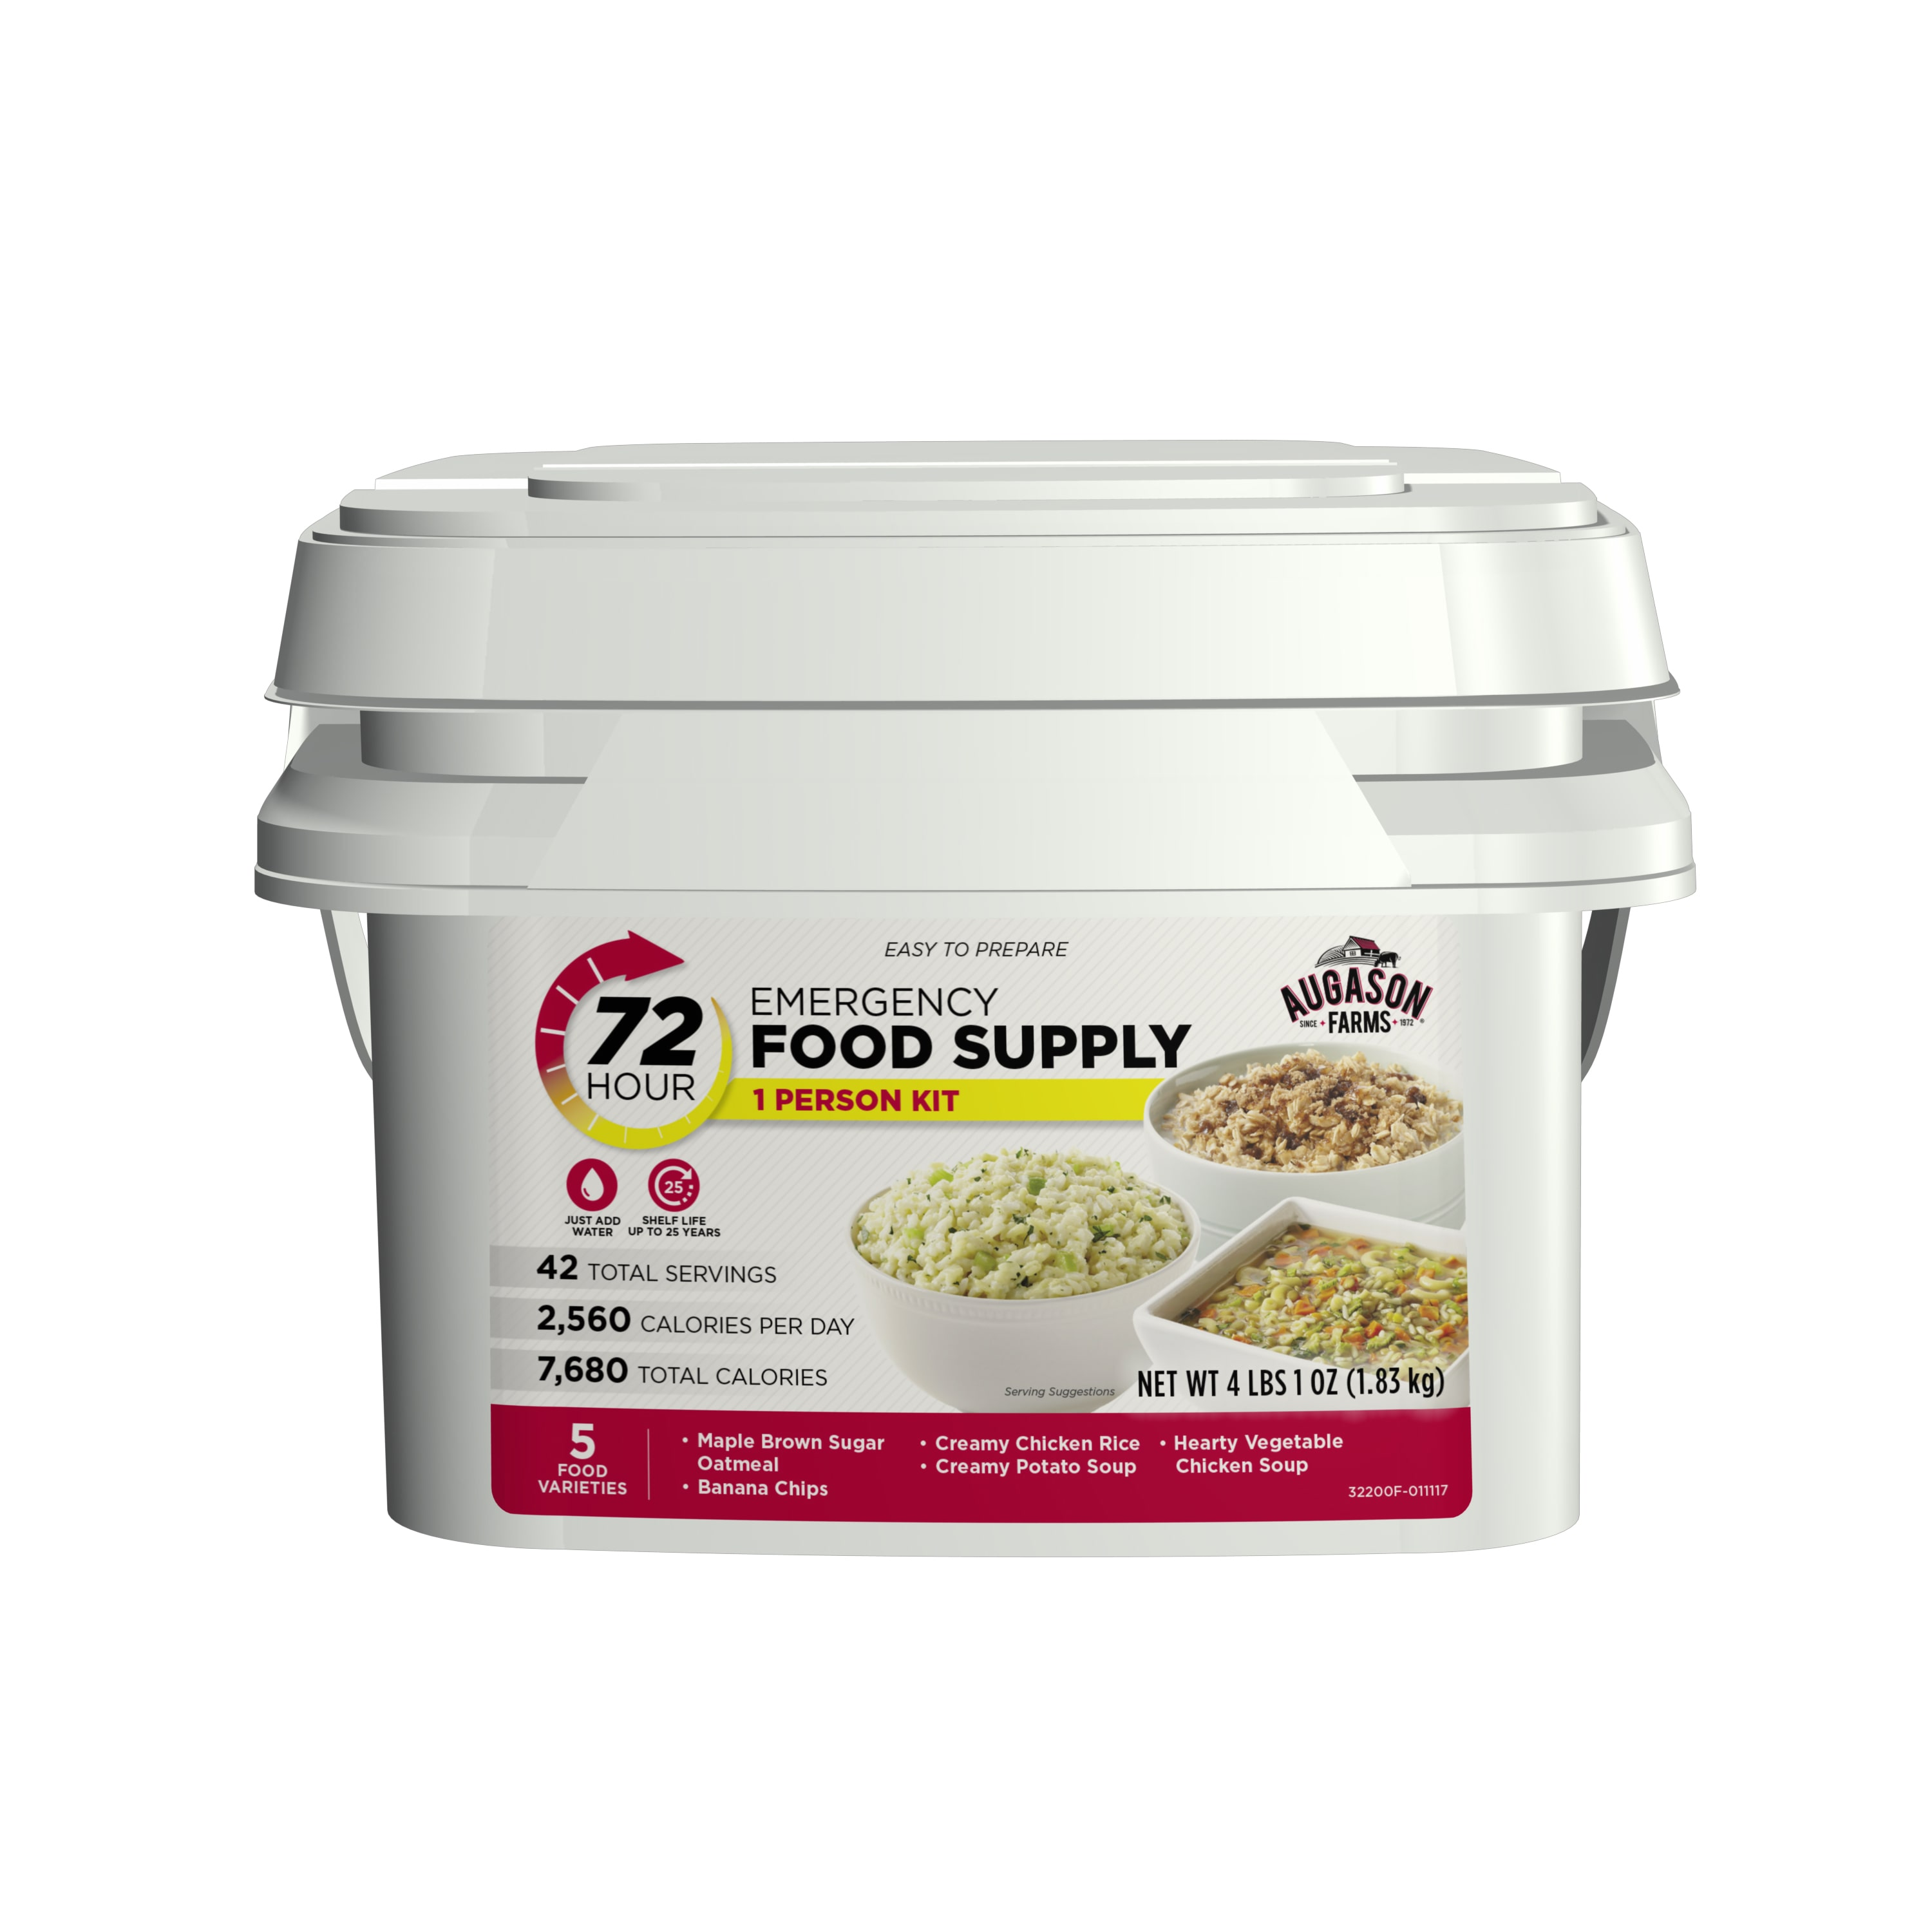 Augason Farms 72-Hour 1-Person Emergency Food Supply Kit by Overstock